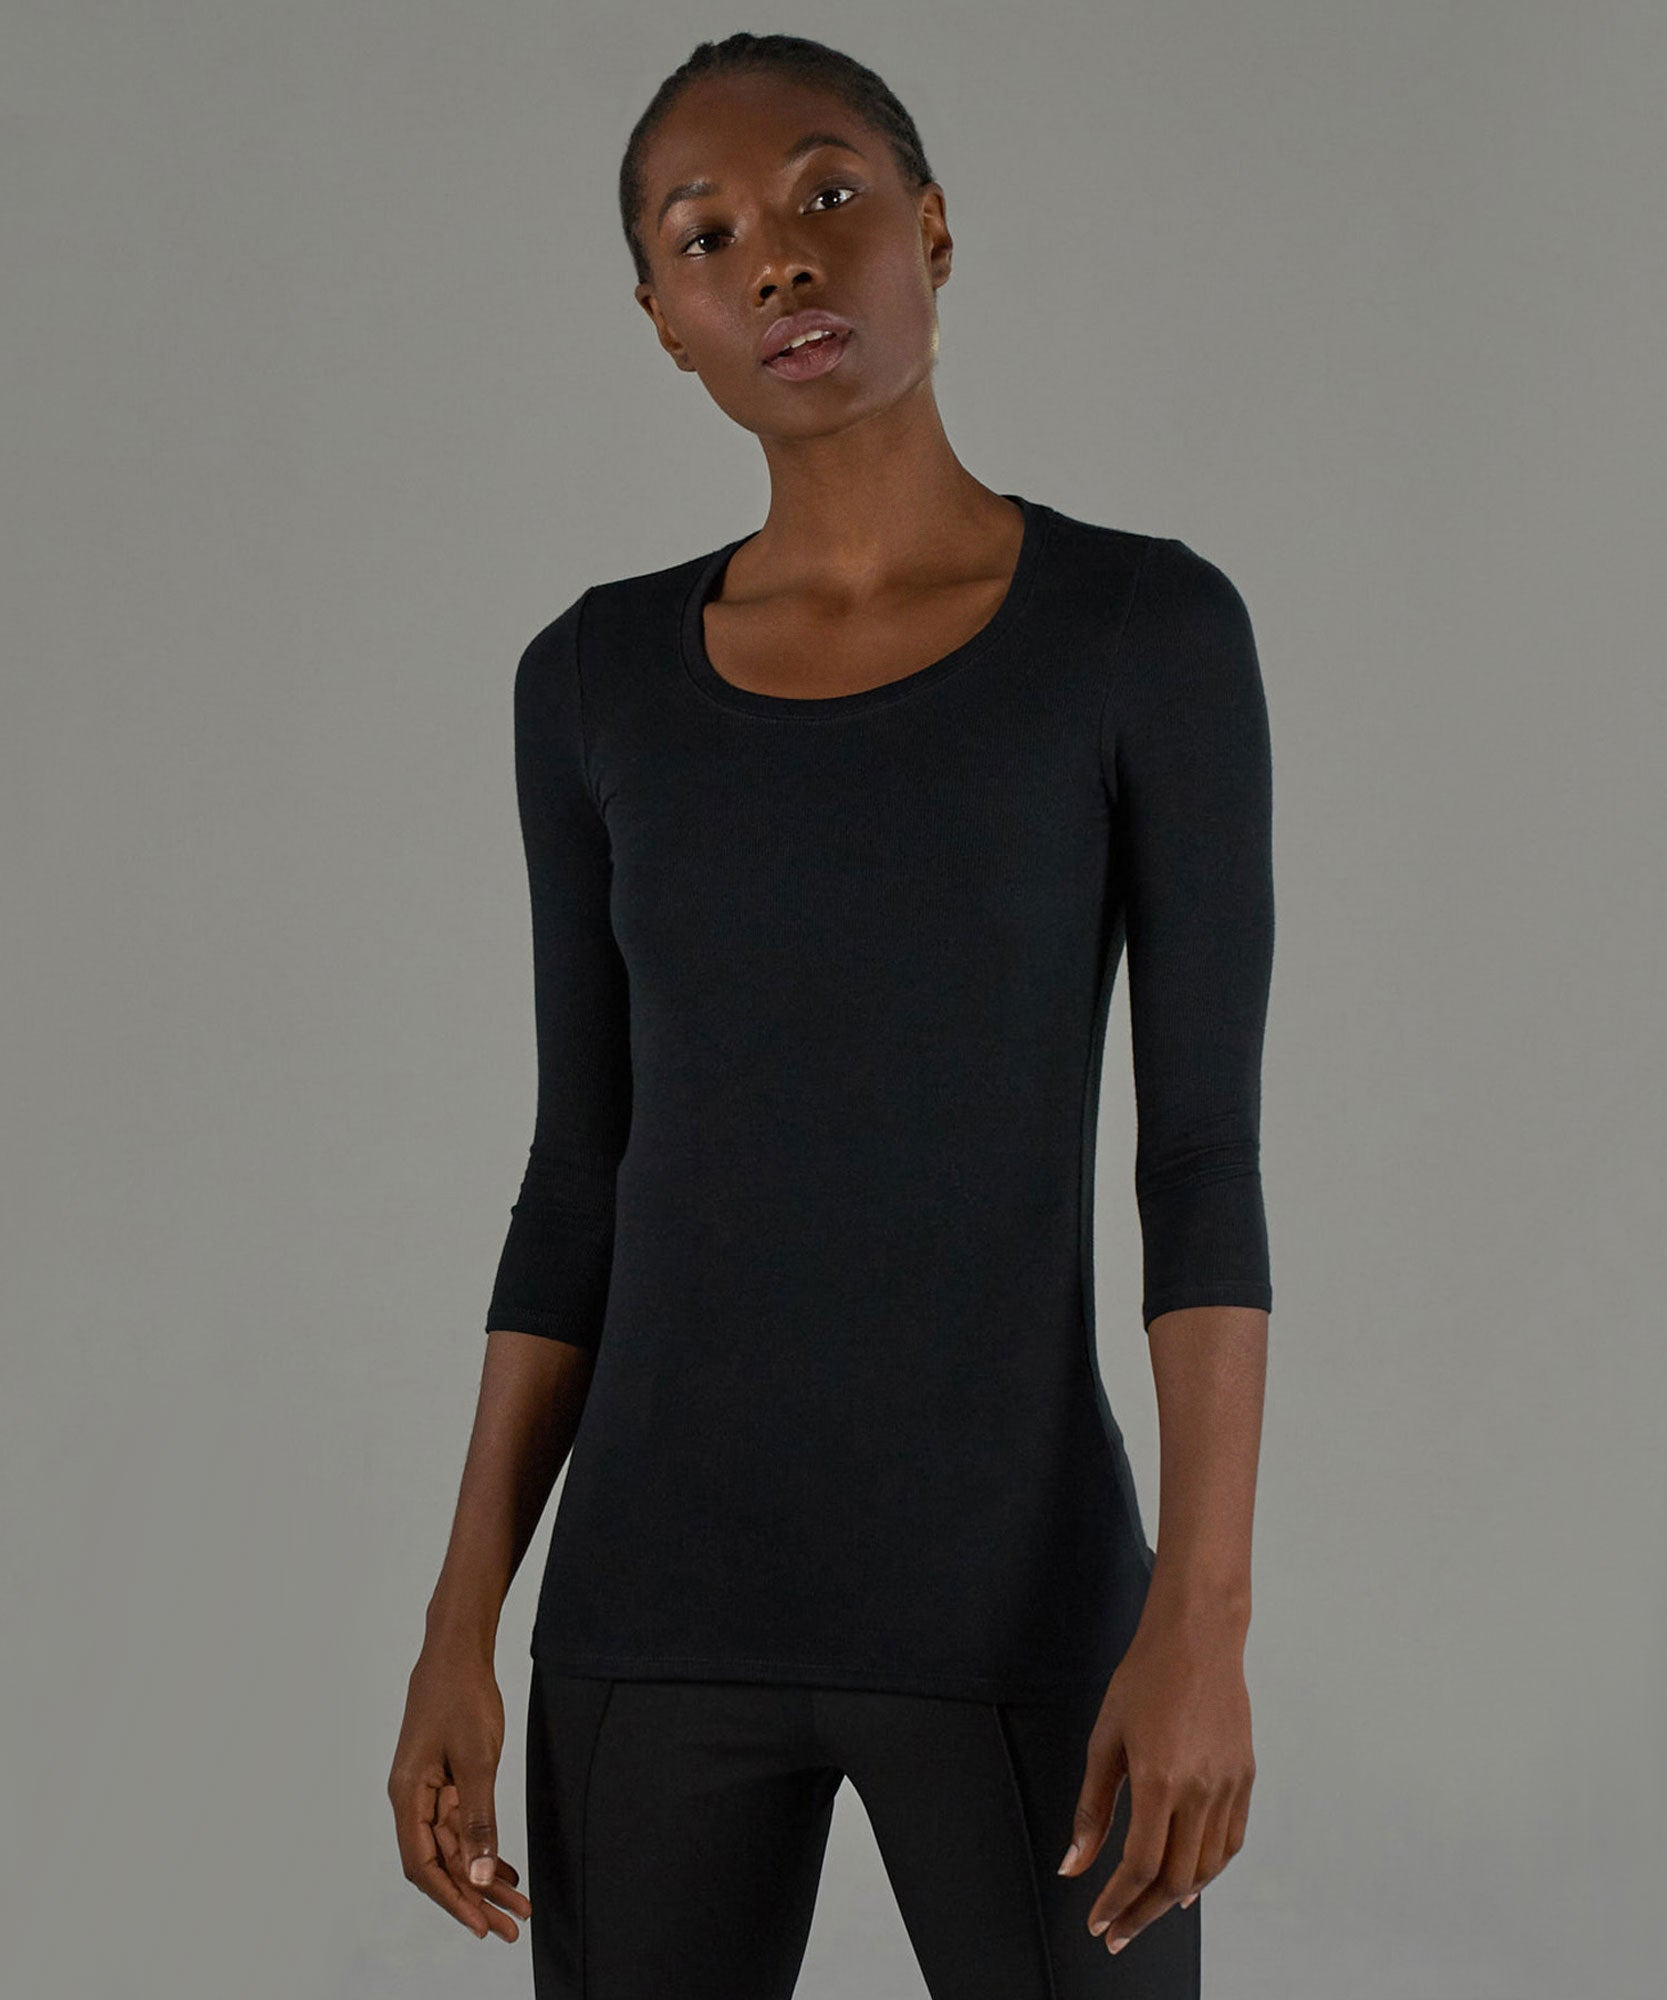 Black Modal Rib Ballet Neck 3/4 Sleeve Tee - Women's T-Shirt by ATM Anthony Thomas Melillo